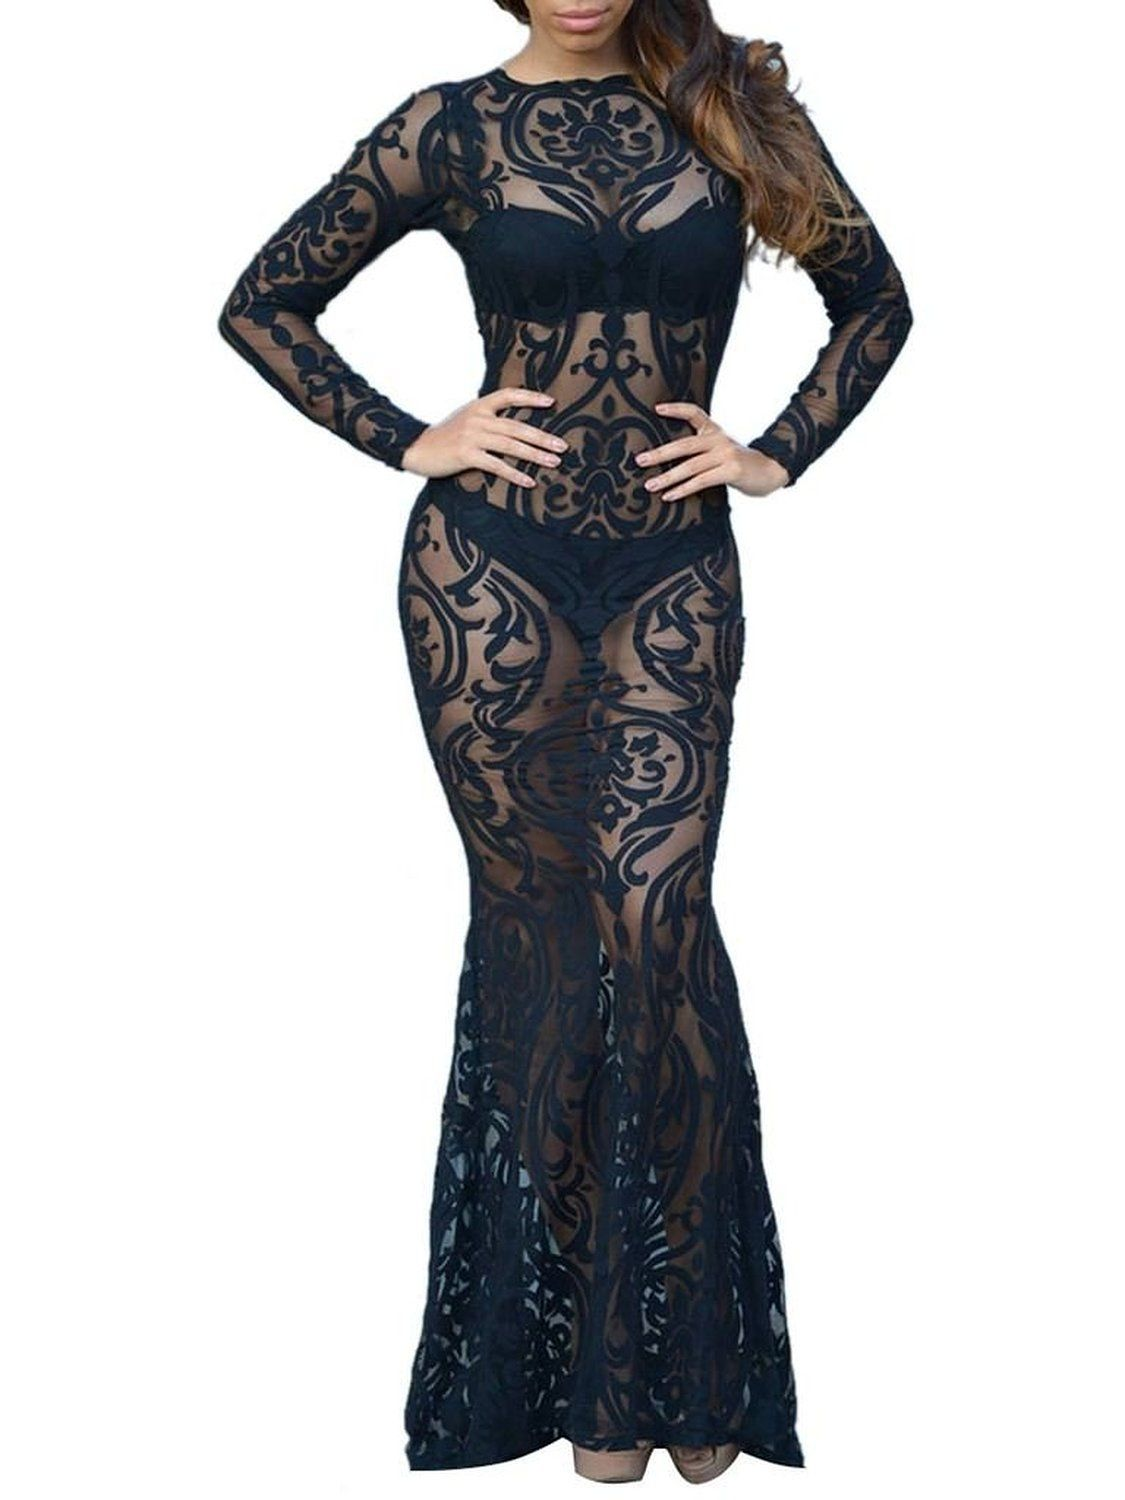 Clothink women whiteblack long sleeve paisley sheer lace maxi dress